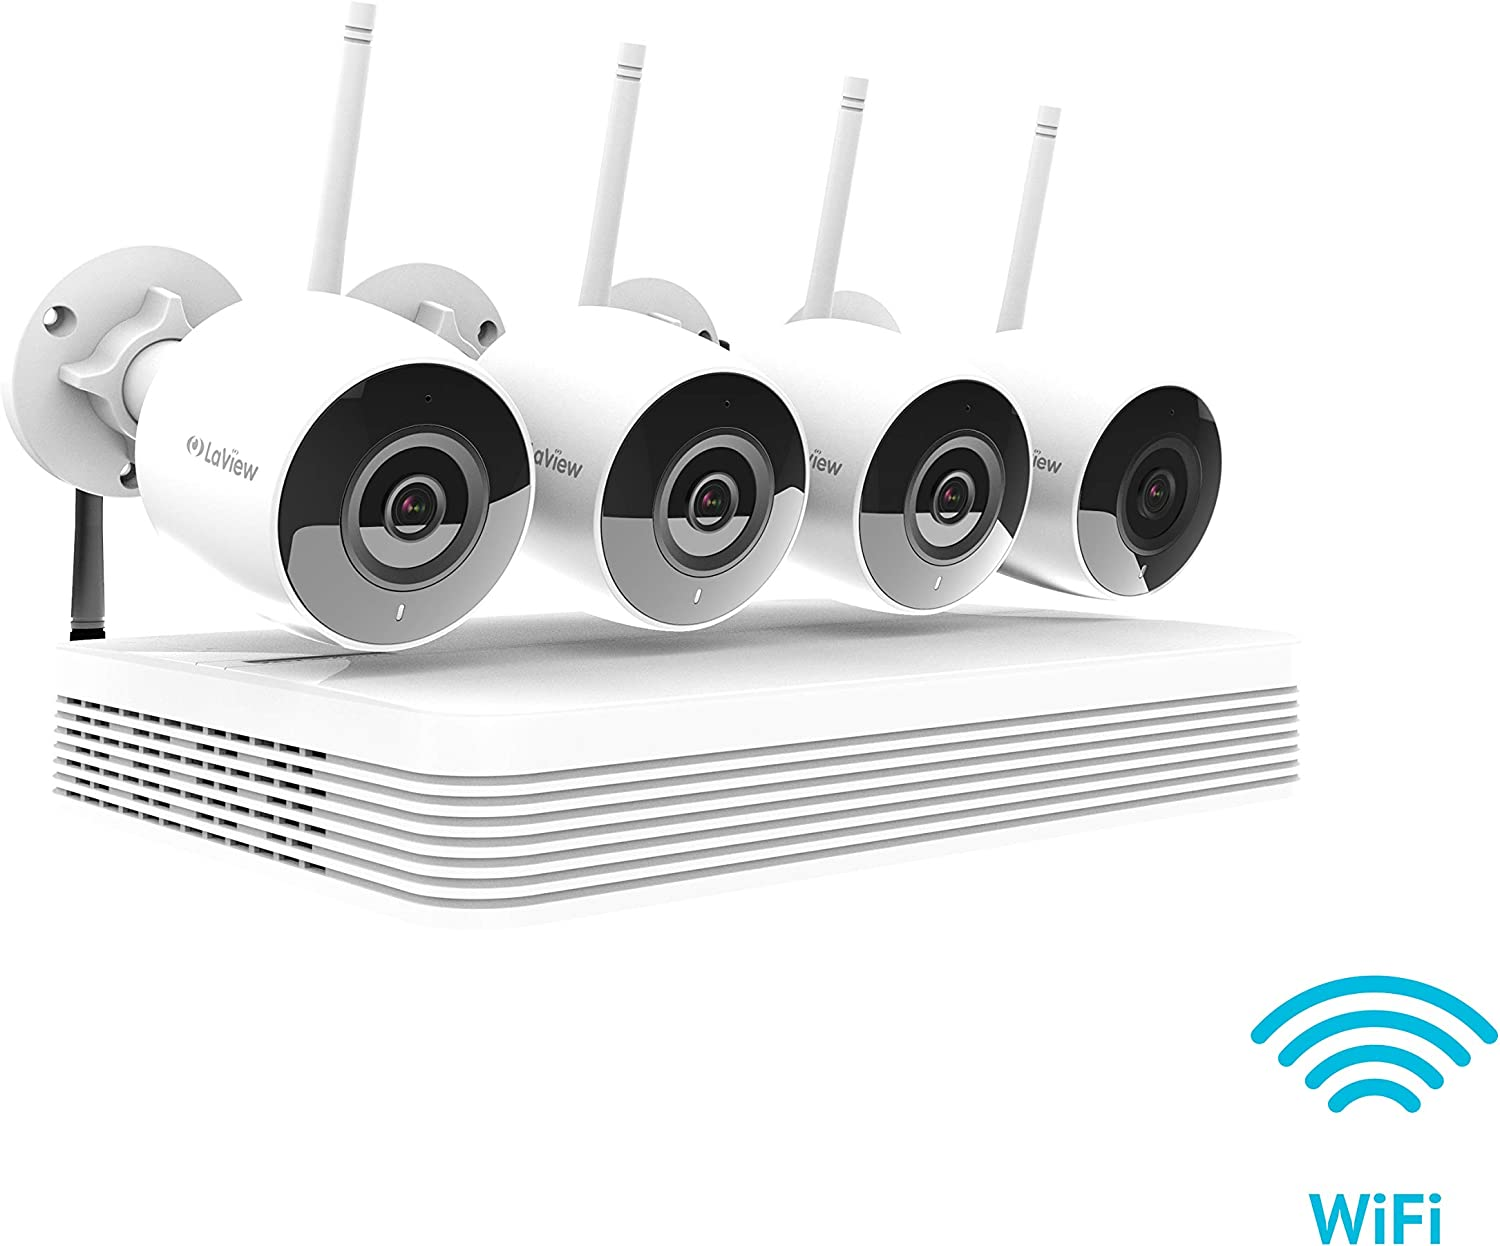 LaView Wireless Wi-Fi 8CH HD 1080P Security CCTV Surveillance System – Four 2MP Wireless Wi-Fi Indoor Outdoor IP Cameras, IR LED Night Vision, 150ft Wi-Fi Range, Mobile Alerts